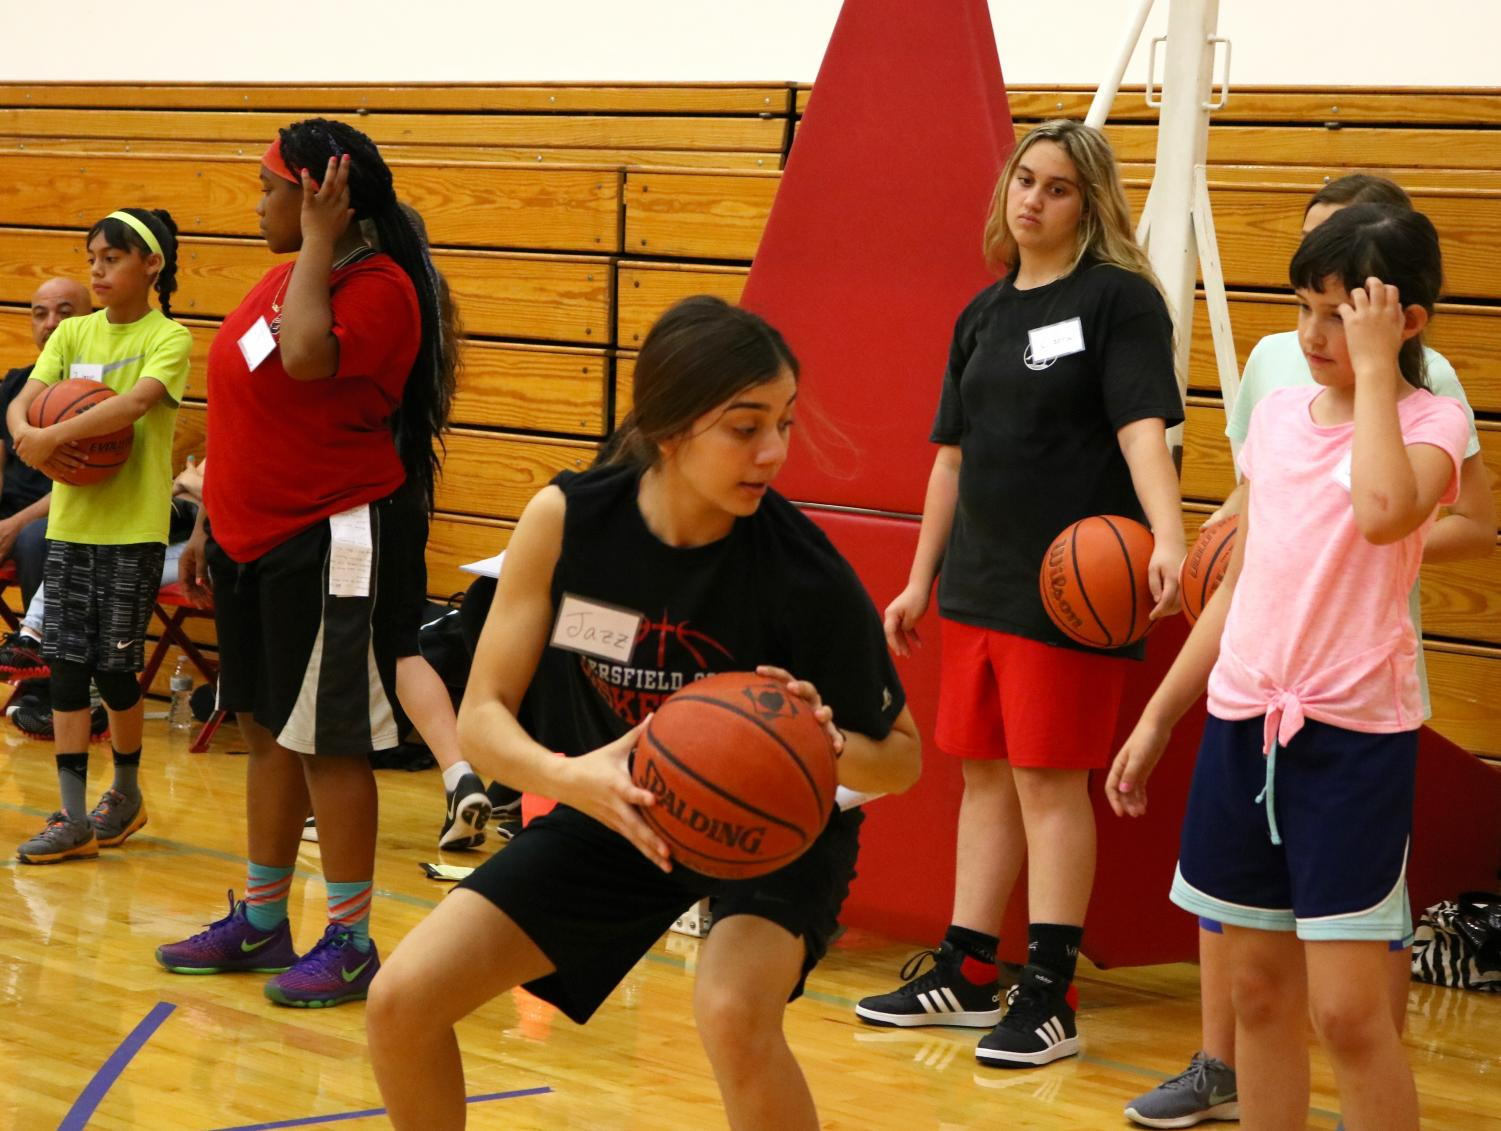 BC student and basketball player Jasmyn Rodriguez showing her group how to crouch and turn without losing balance, as a part of the BC Basketball Academy.